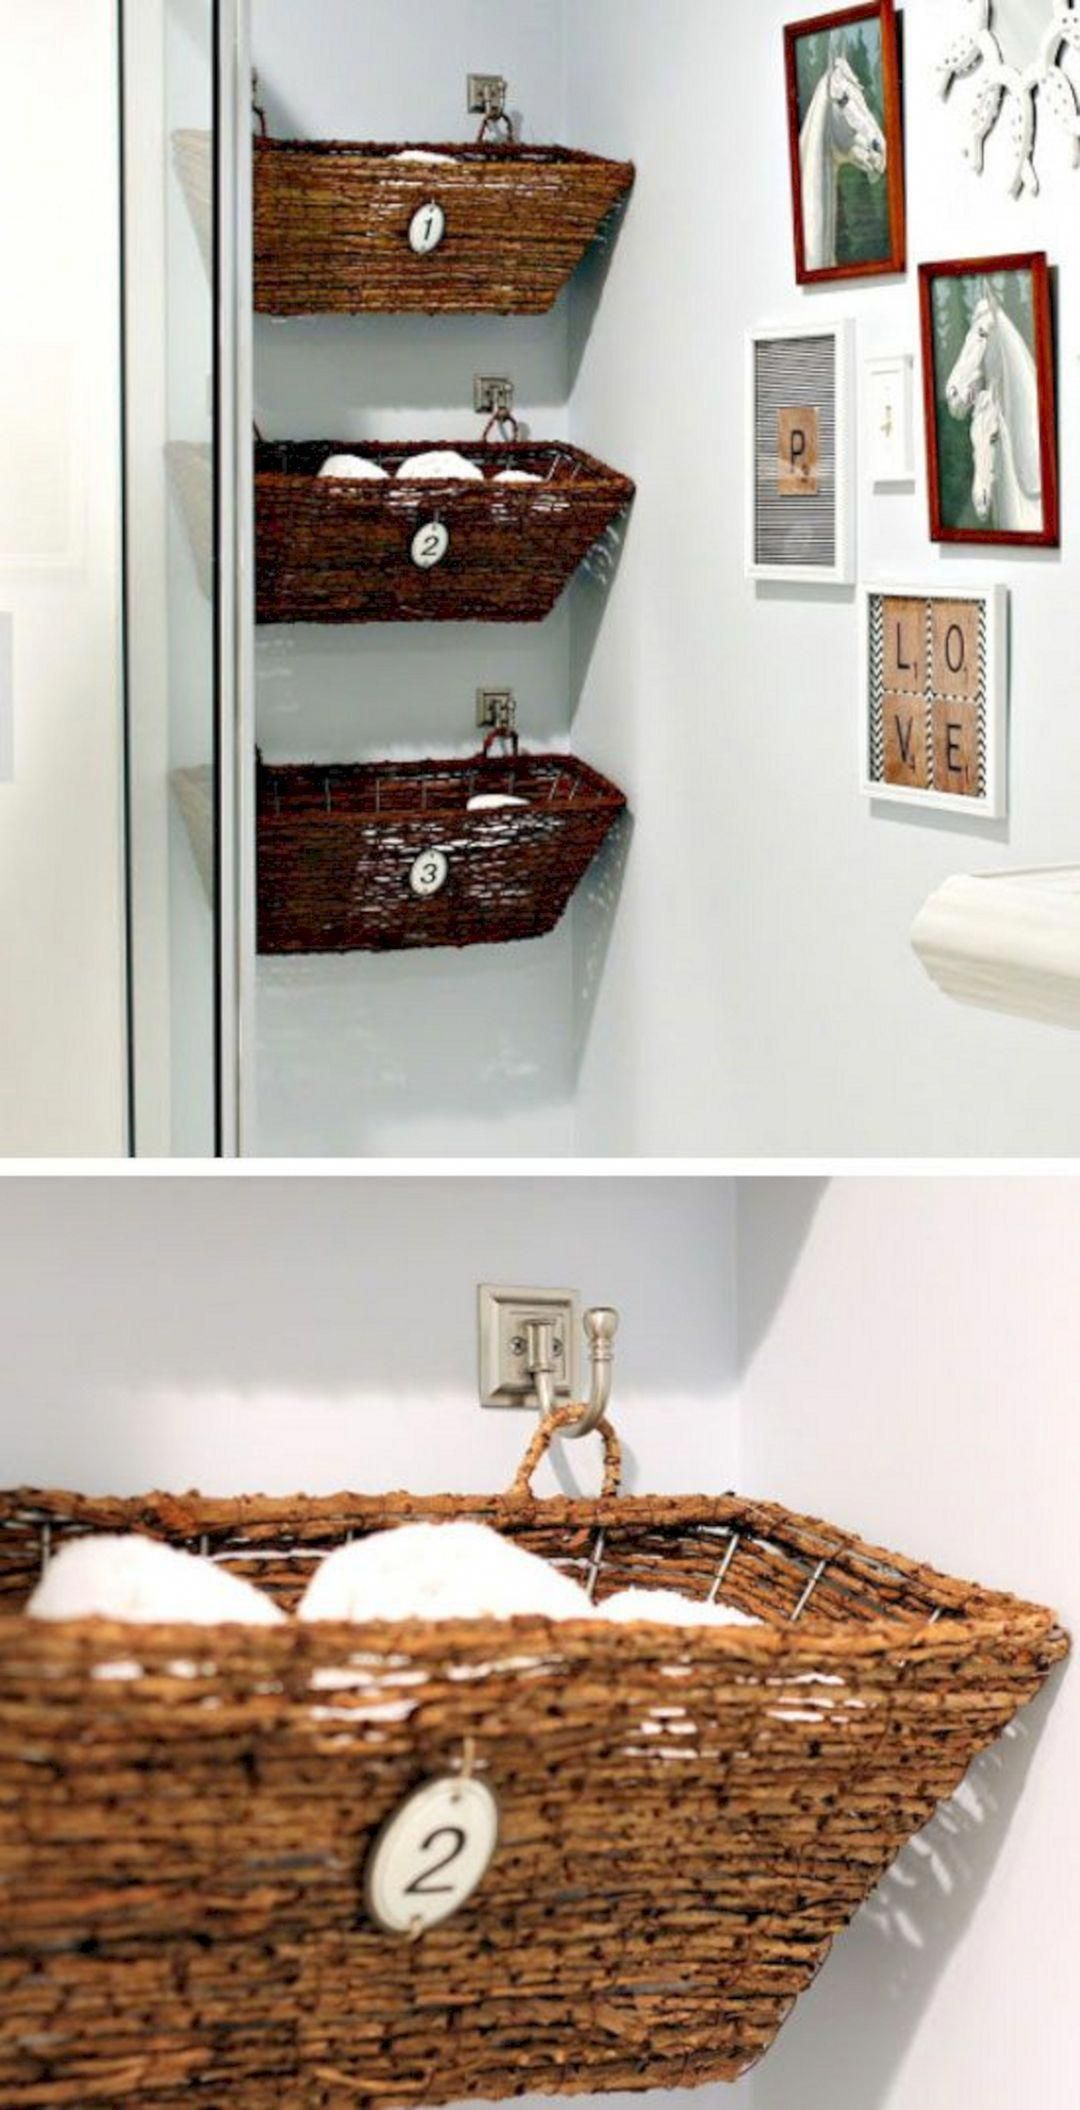 The Best Bedroom Storage Ideas For Small Room Spaces No 02 ...